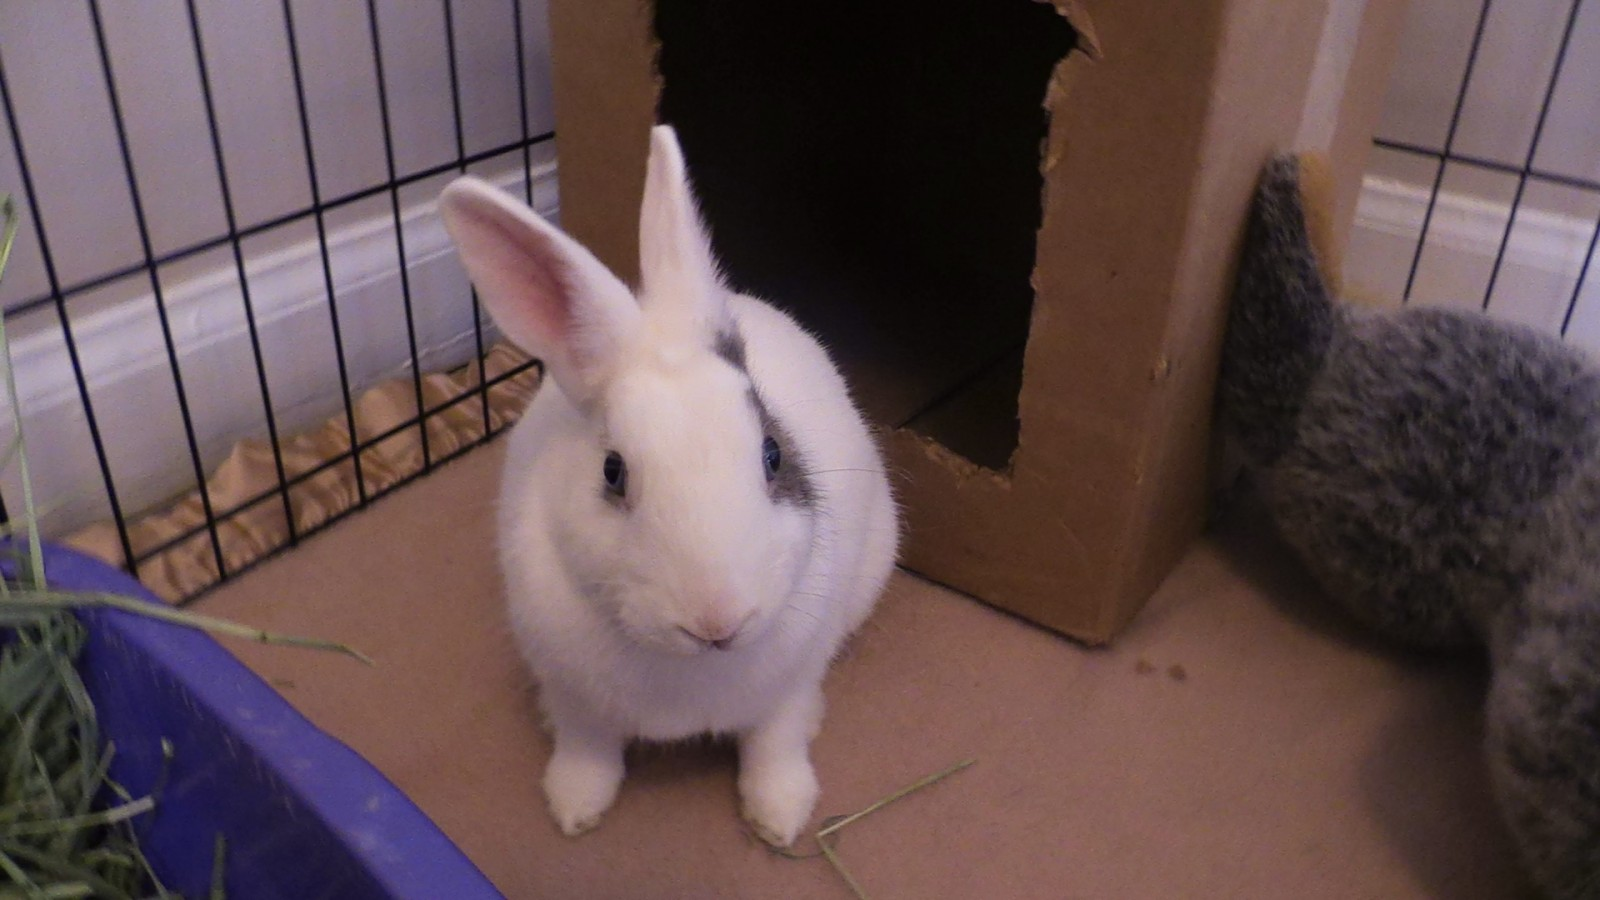 Rabbit rescue looks to educate the public about Easter bunnies